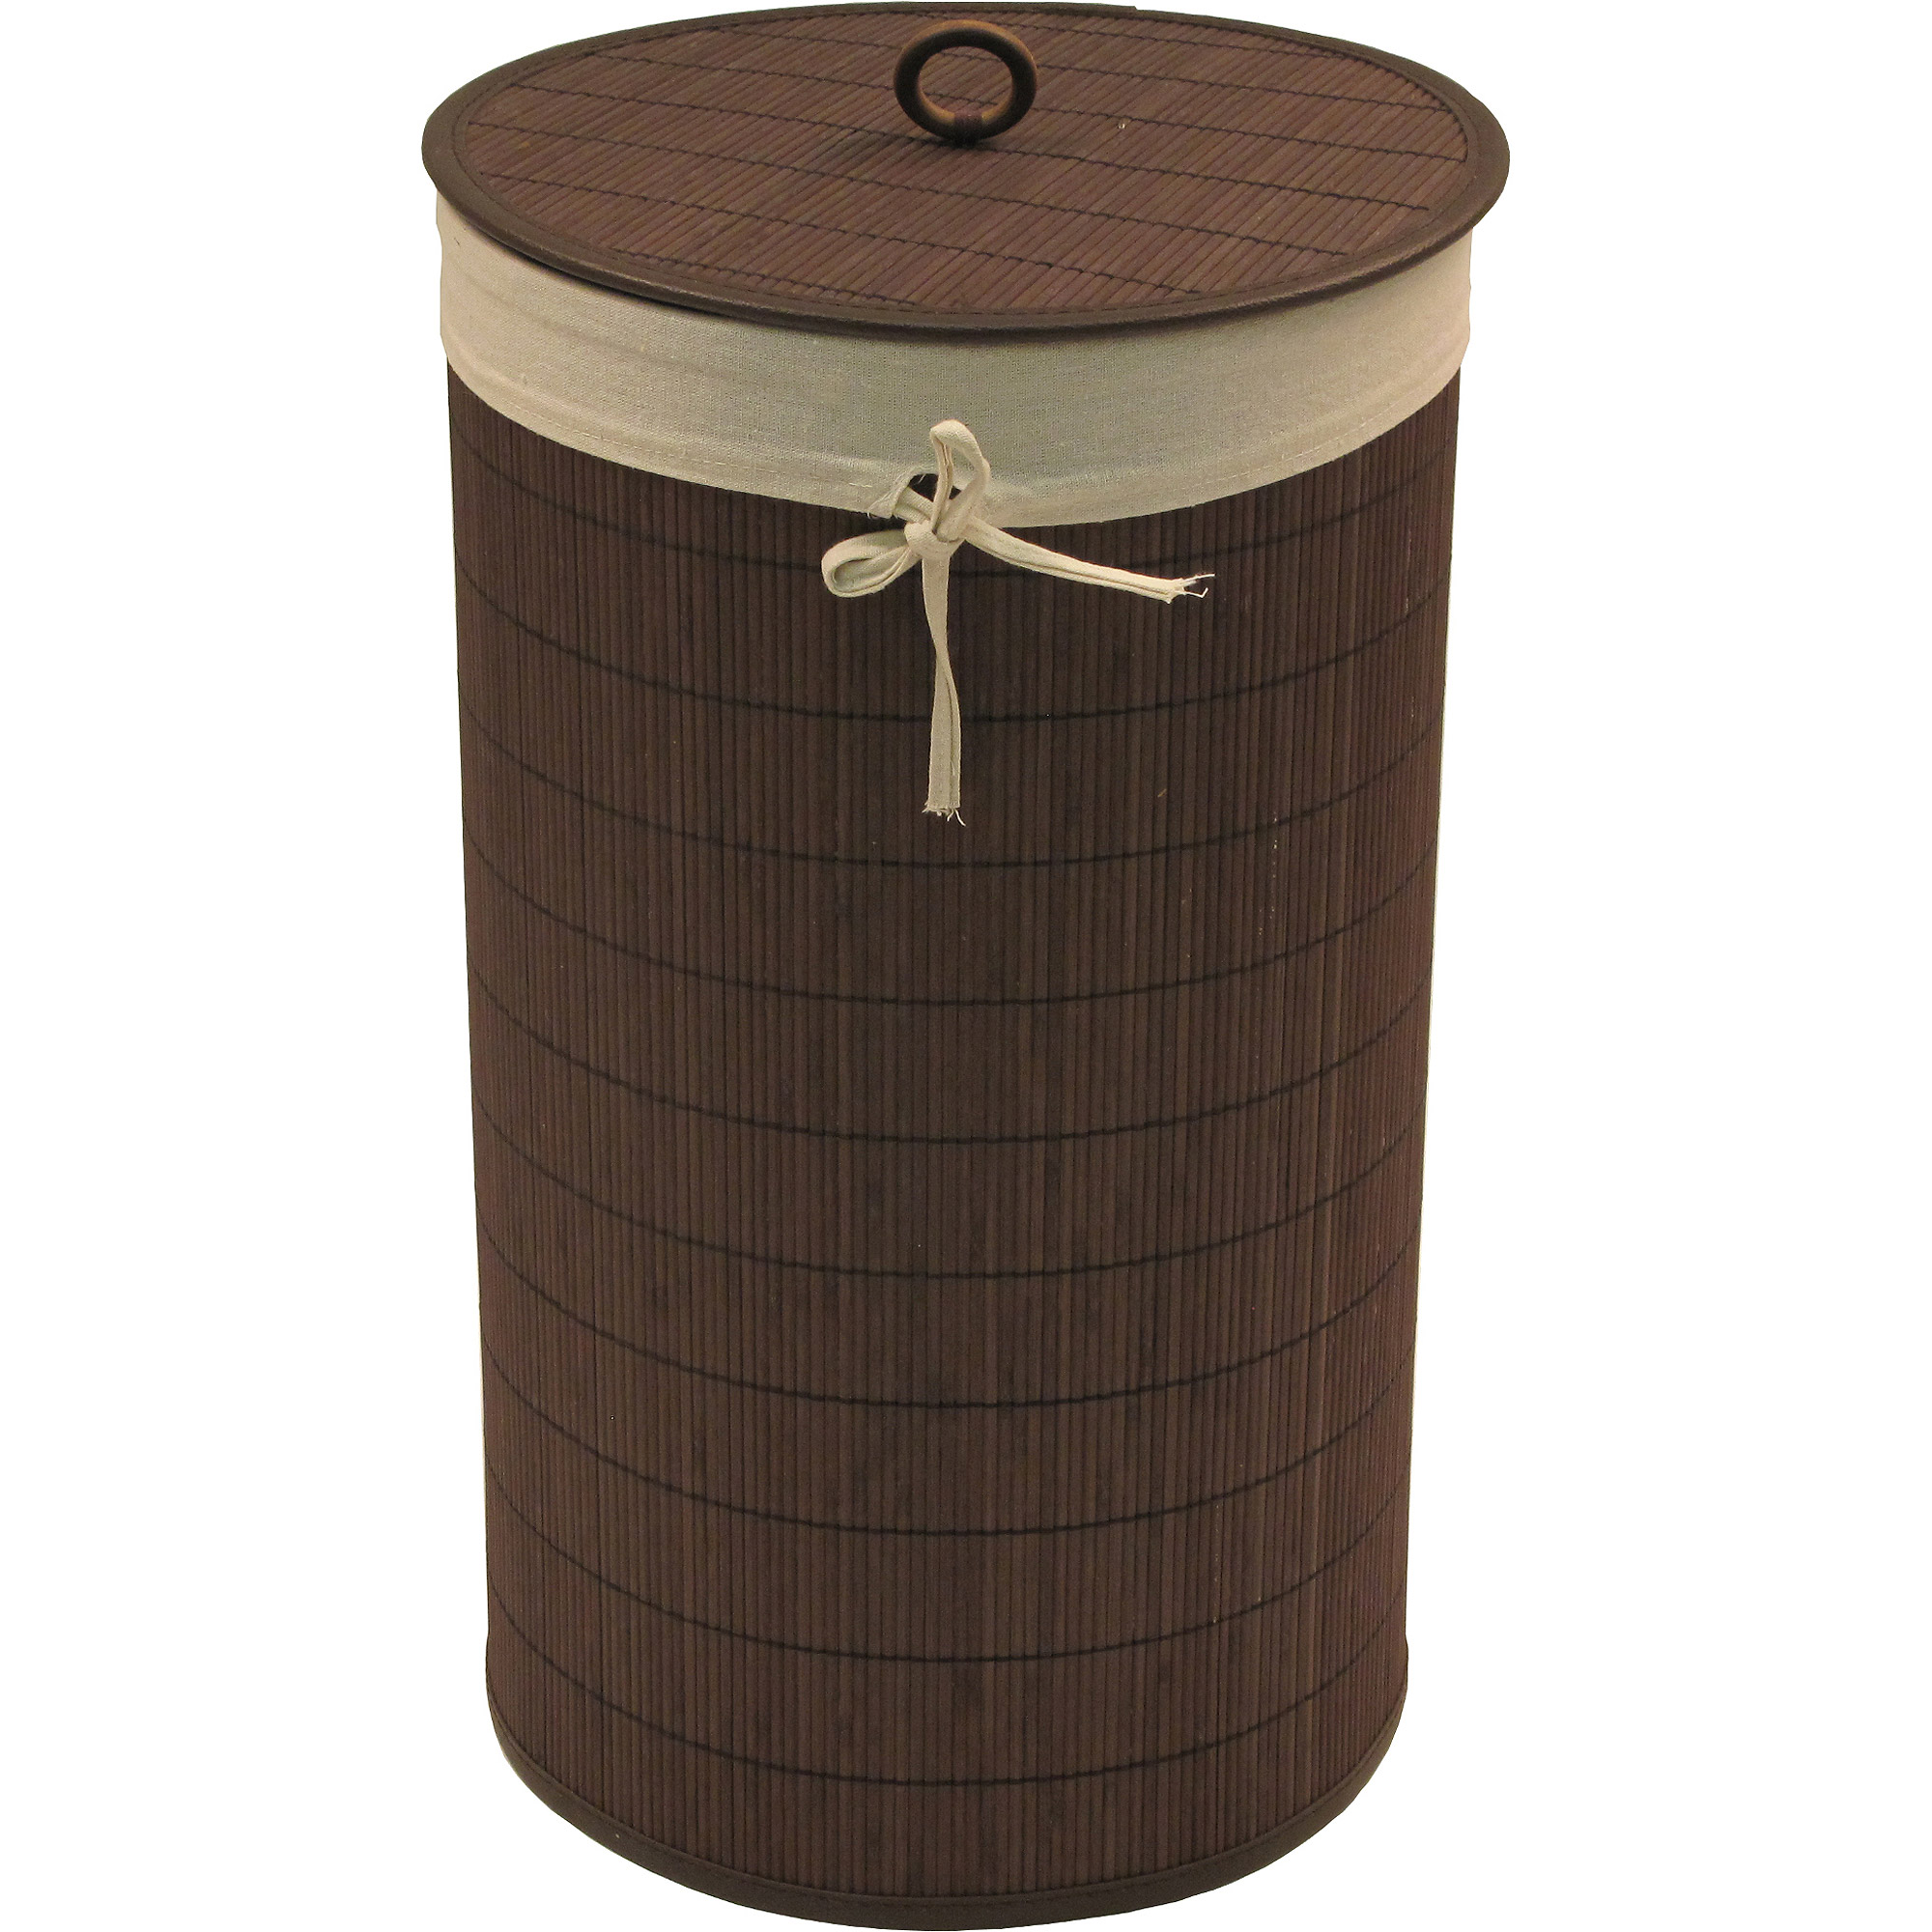 Baby Things Bamboo Hamper with Liner, Espresso by Redmon